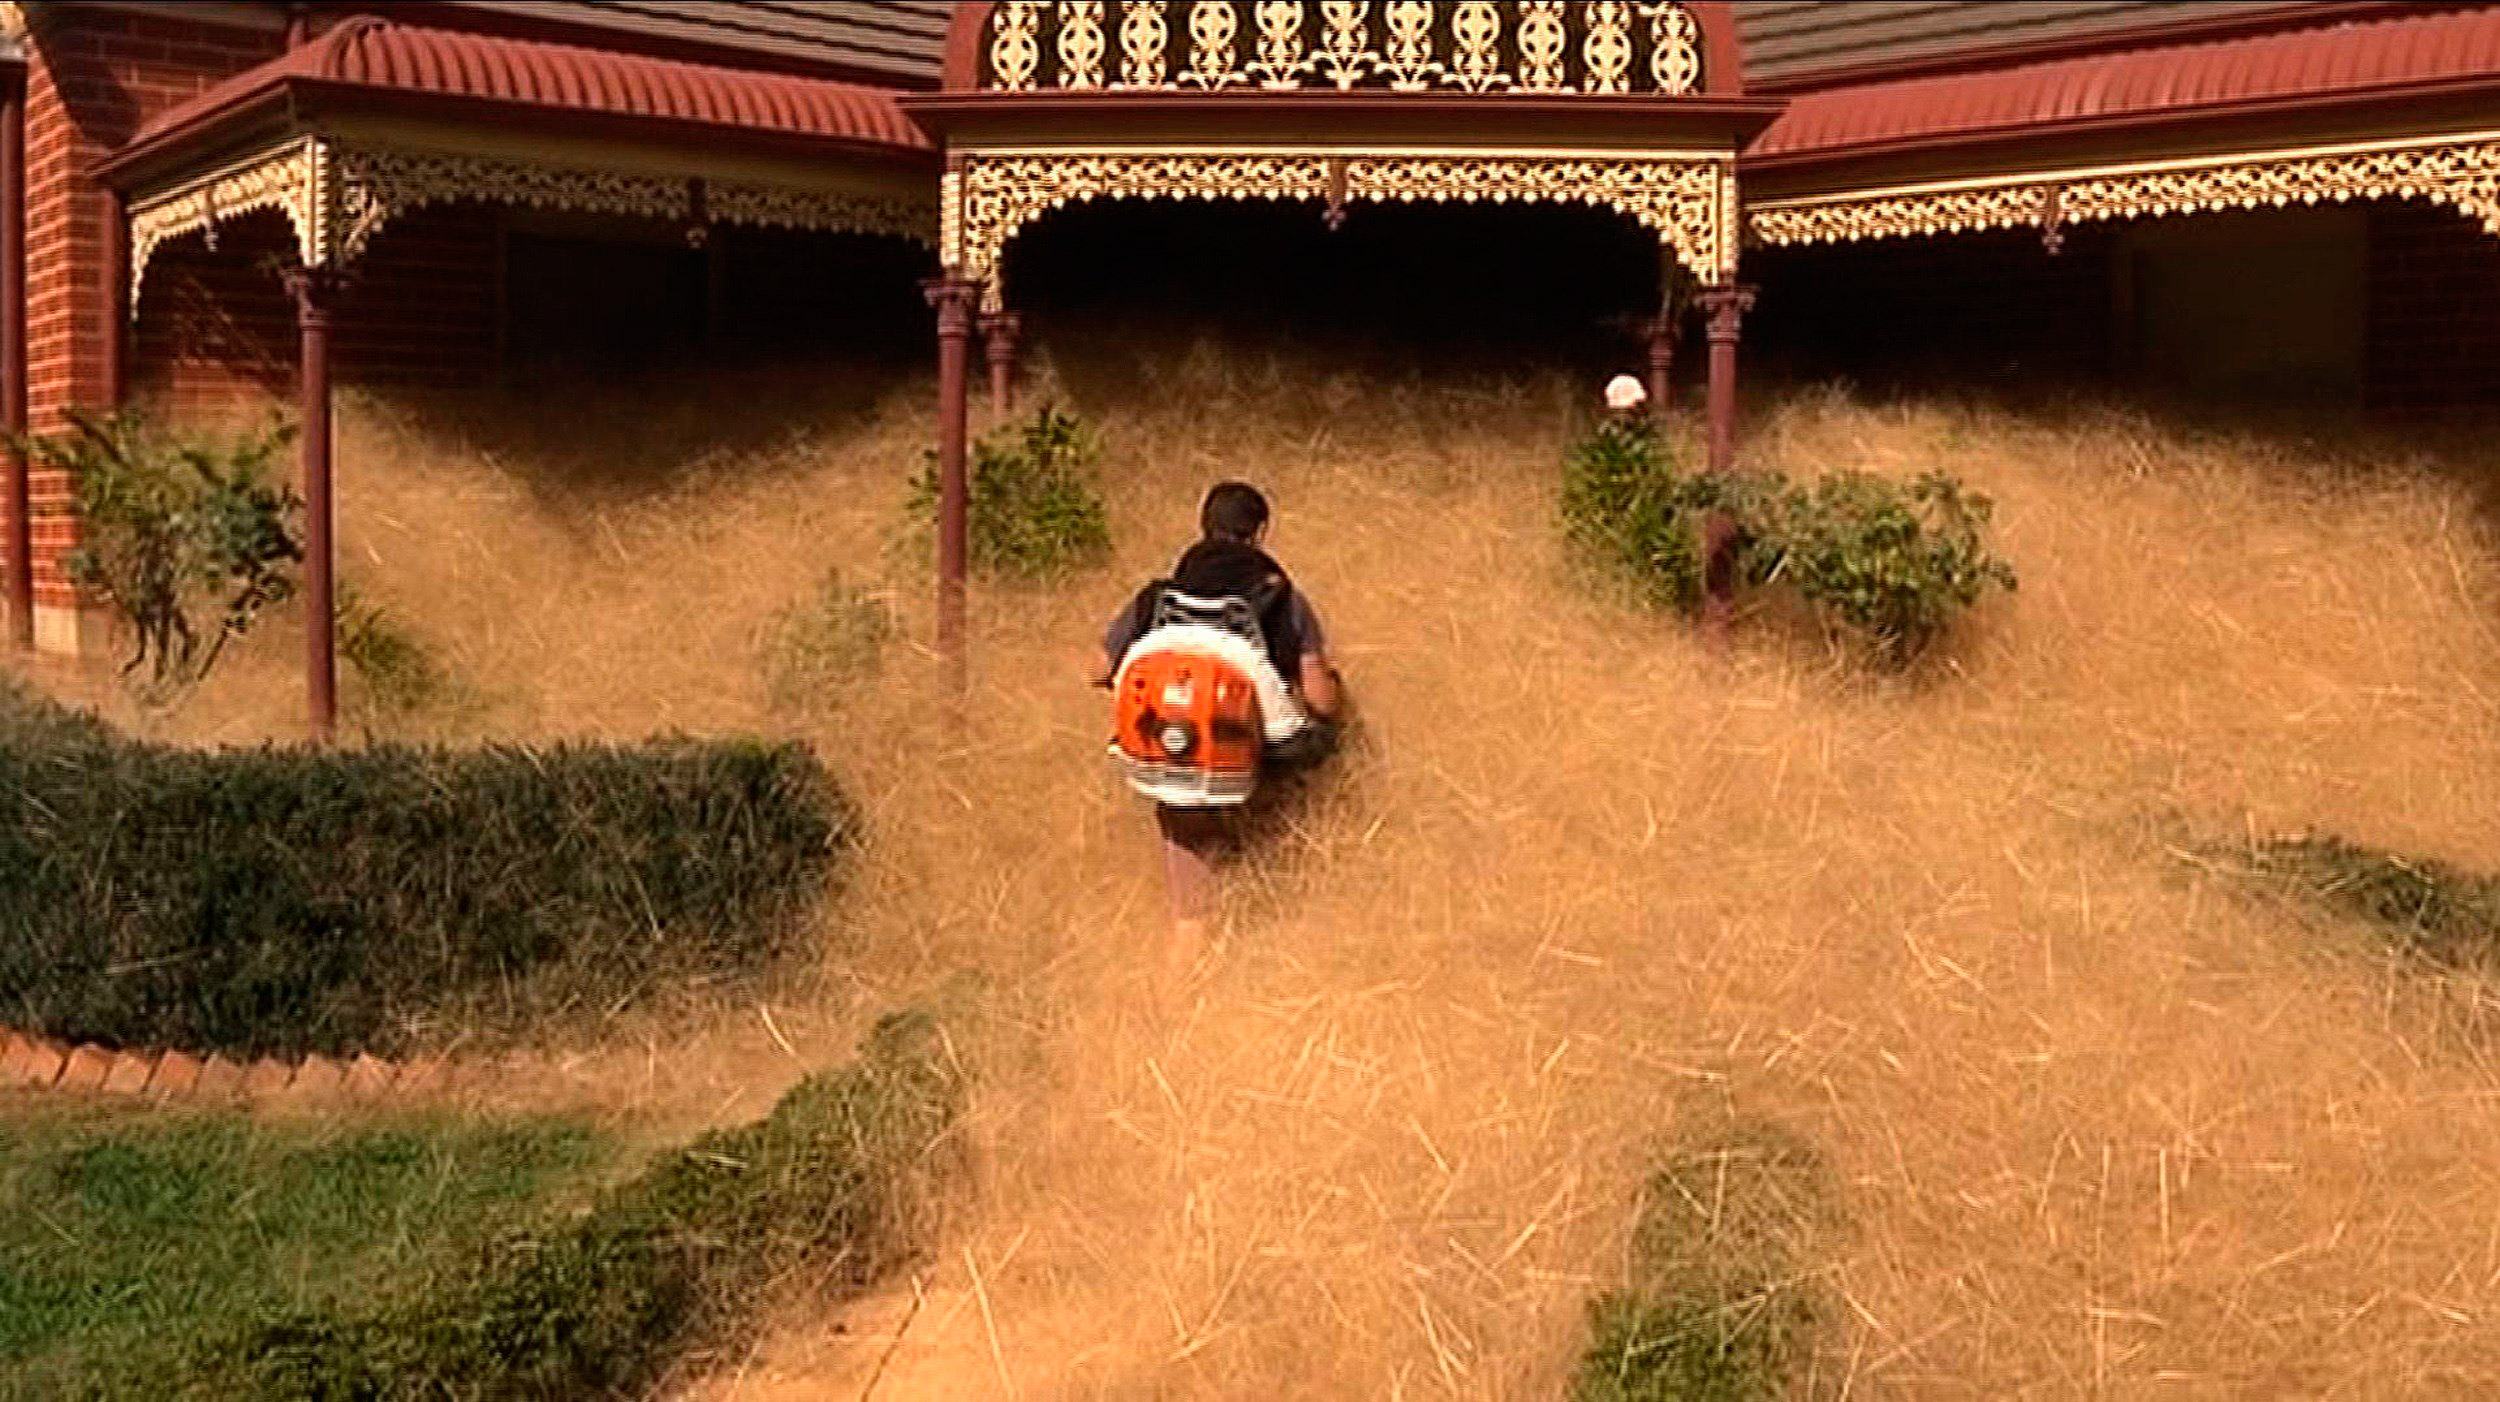 This frame grab from footage released by Australian television's Channel 7 on Feb. 18, 2016, shows a man clearing out fast-growing tumbleweed from a home in the town of Wangaratta, 150 miles northeast of Melbourne, Australia.